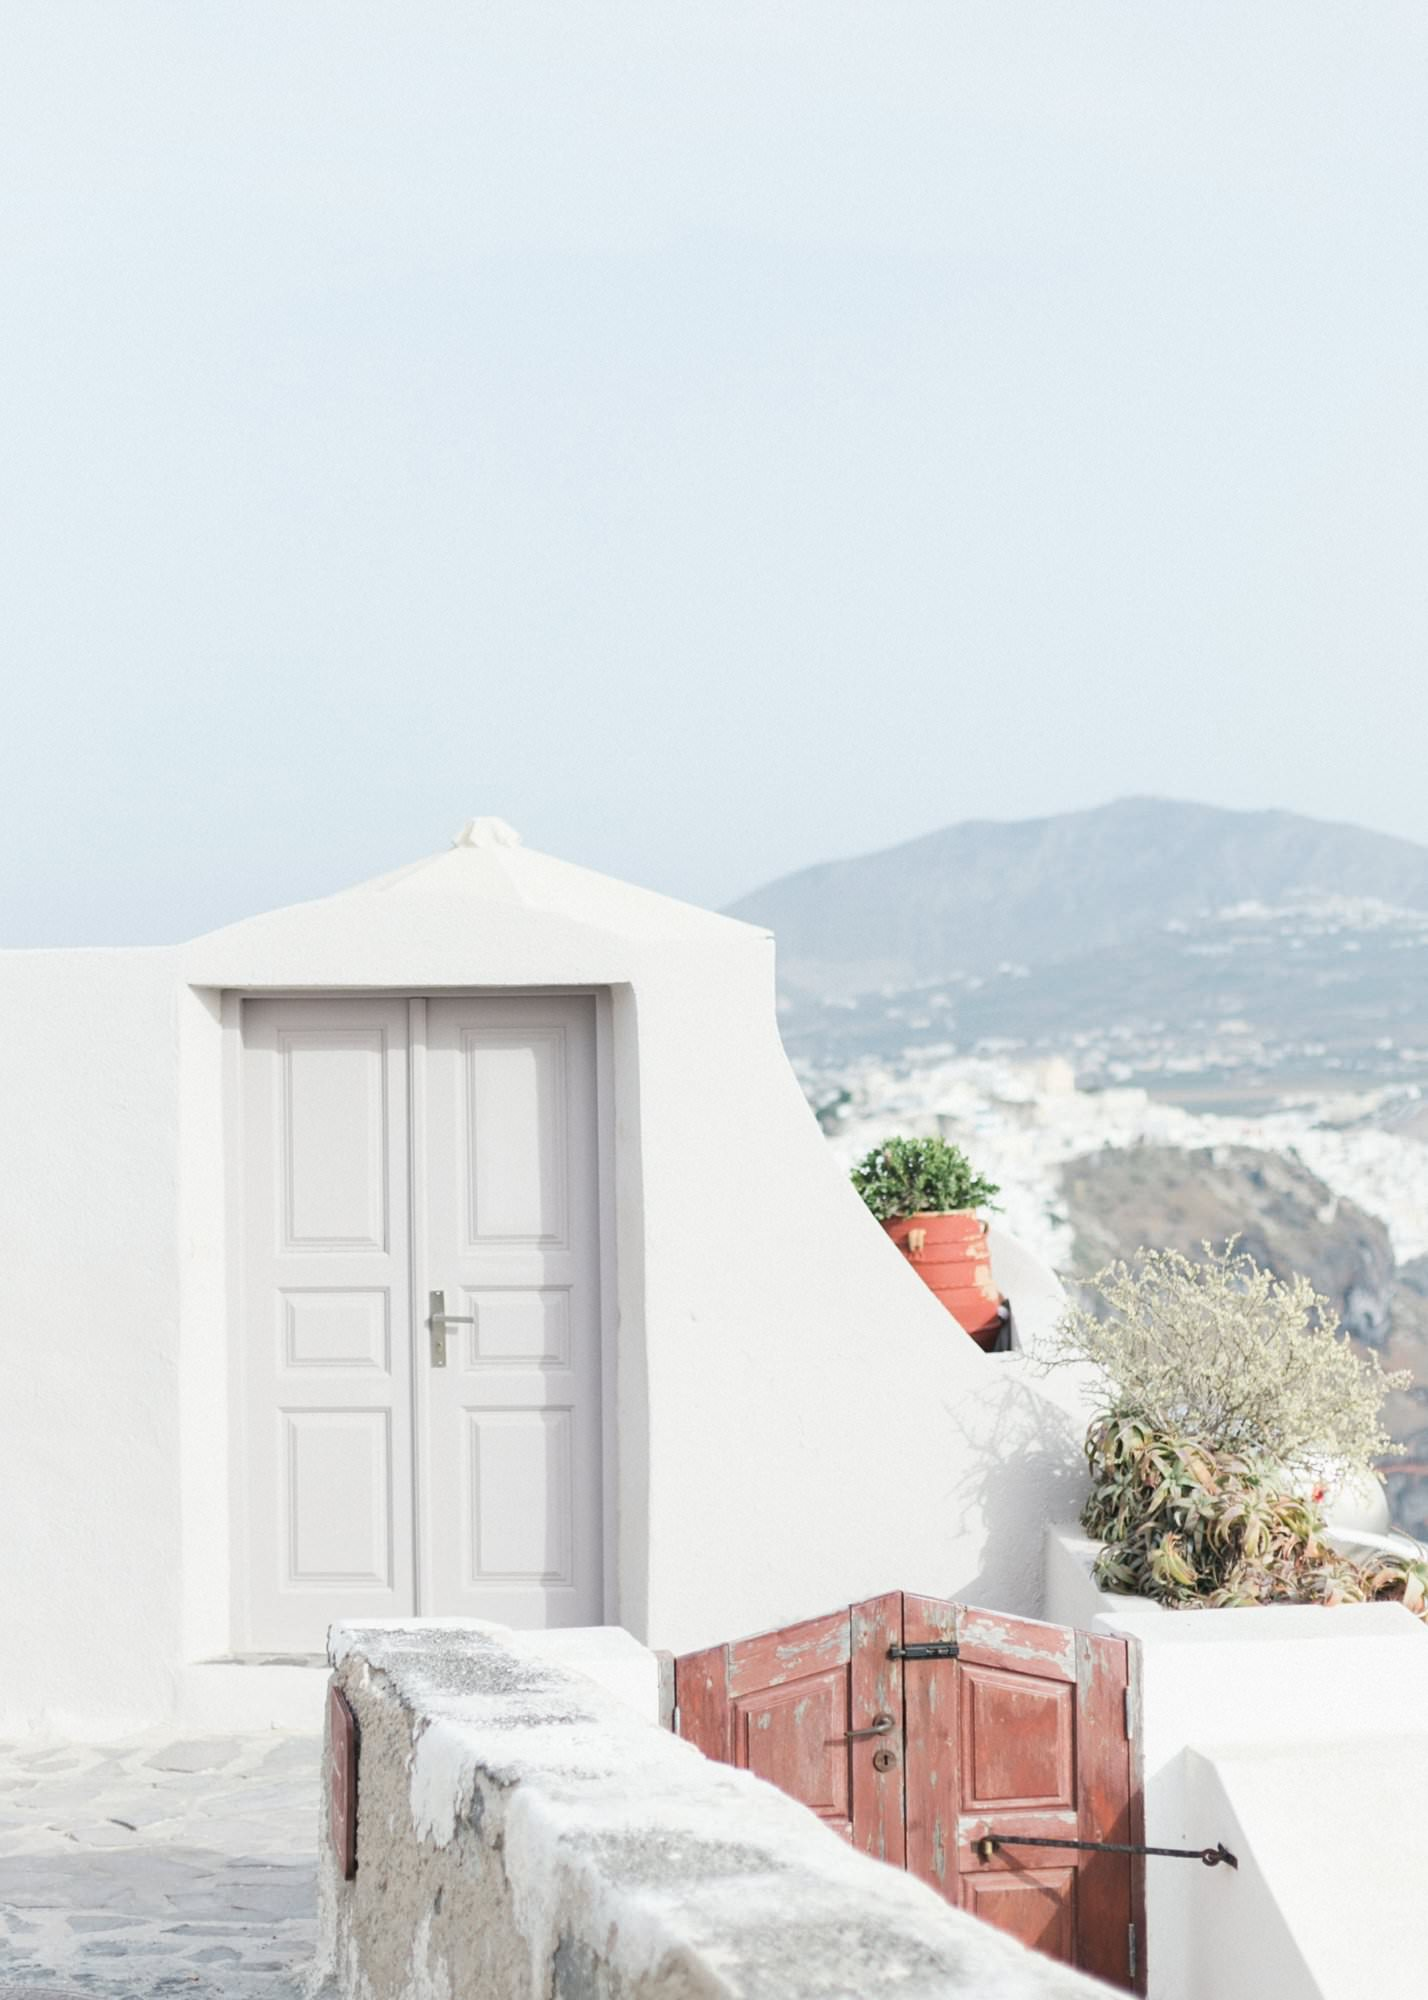 21-bridal-santorini-wedding-photographer-greece-b-v